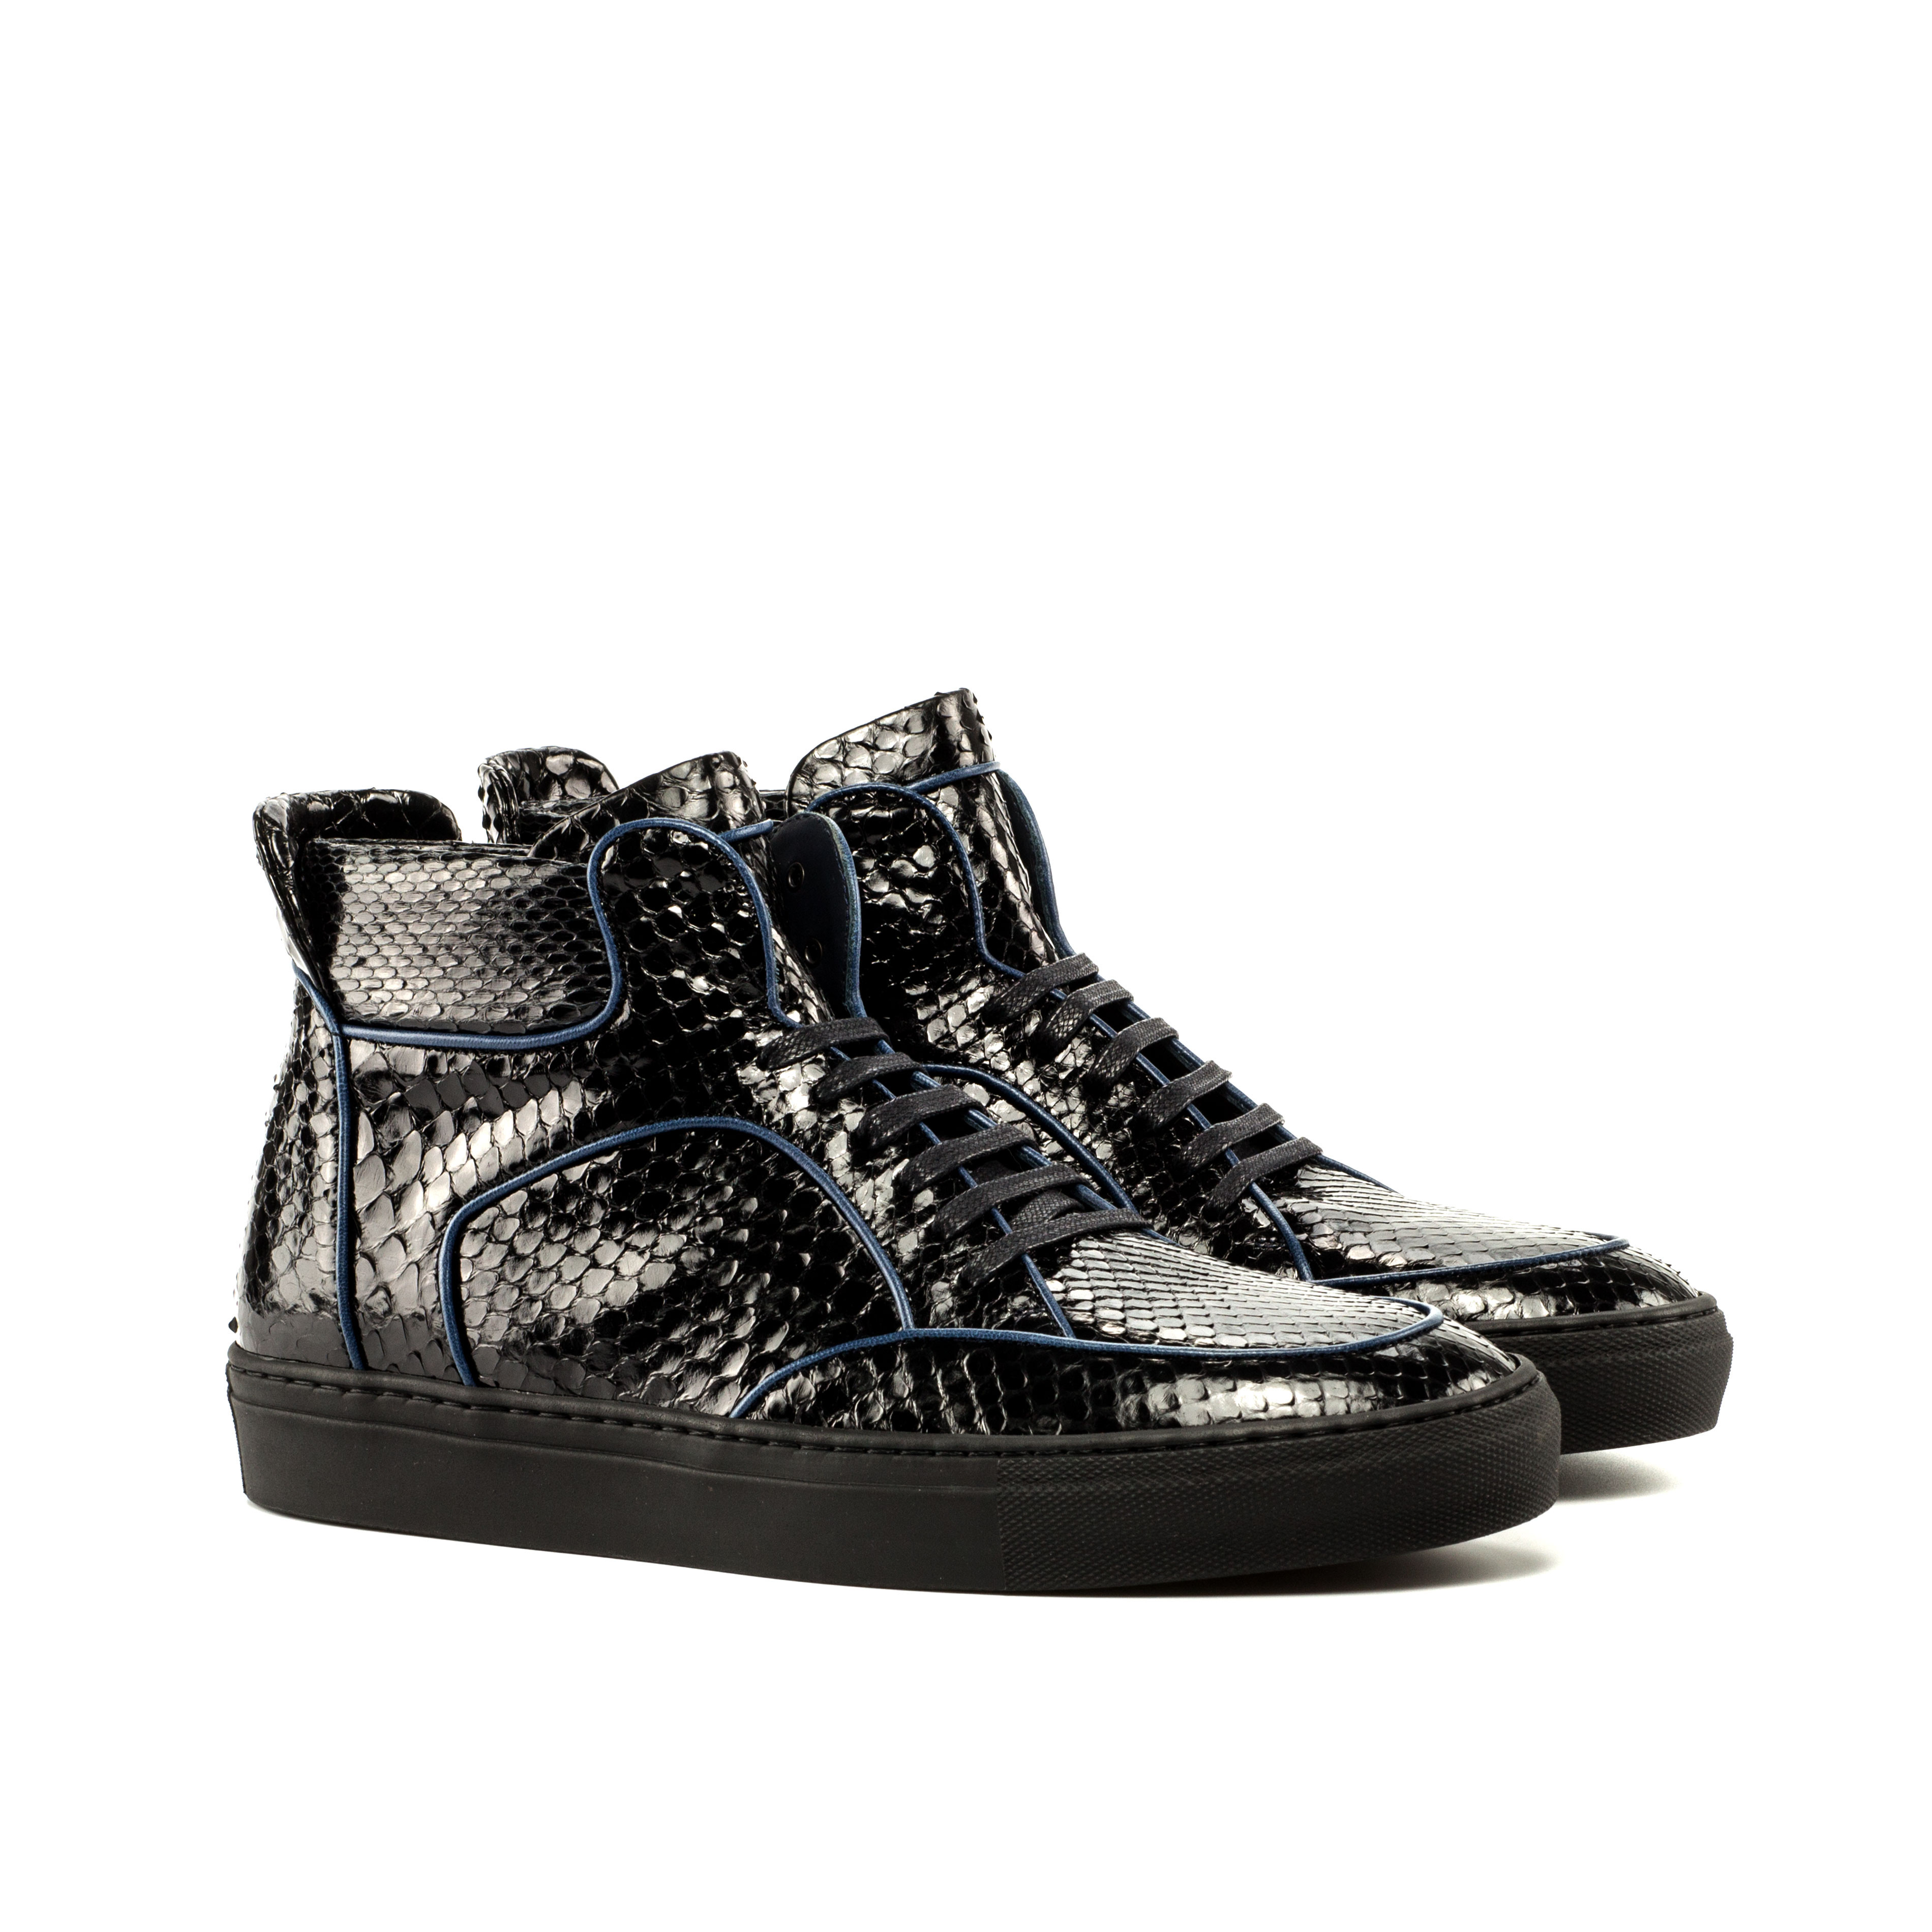 Black Python High Top